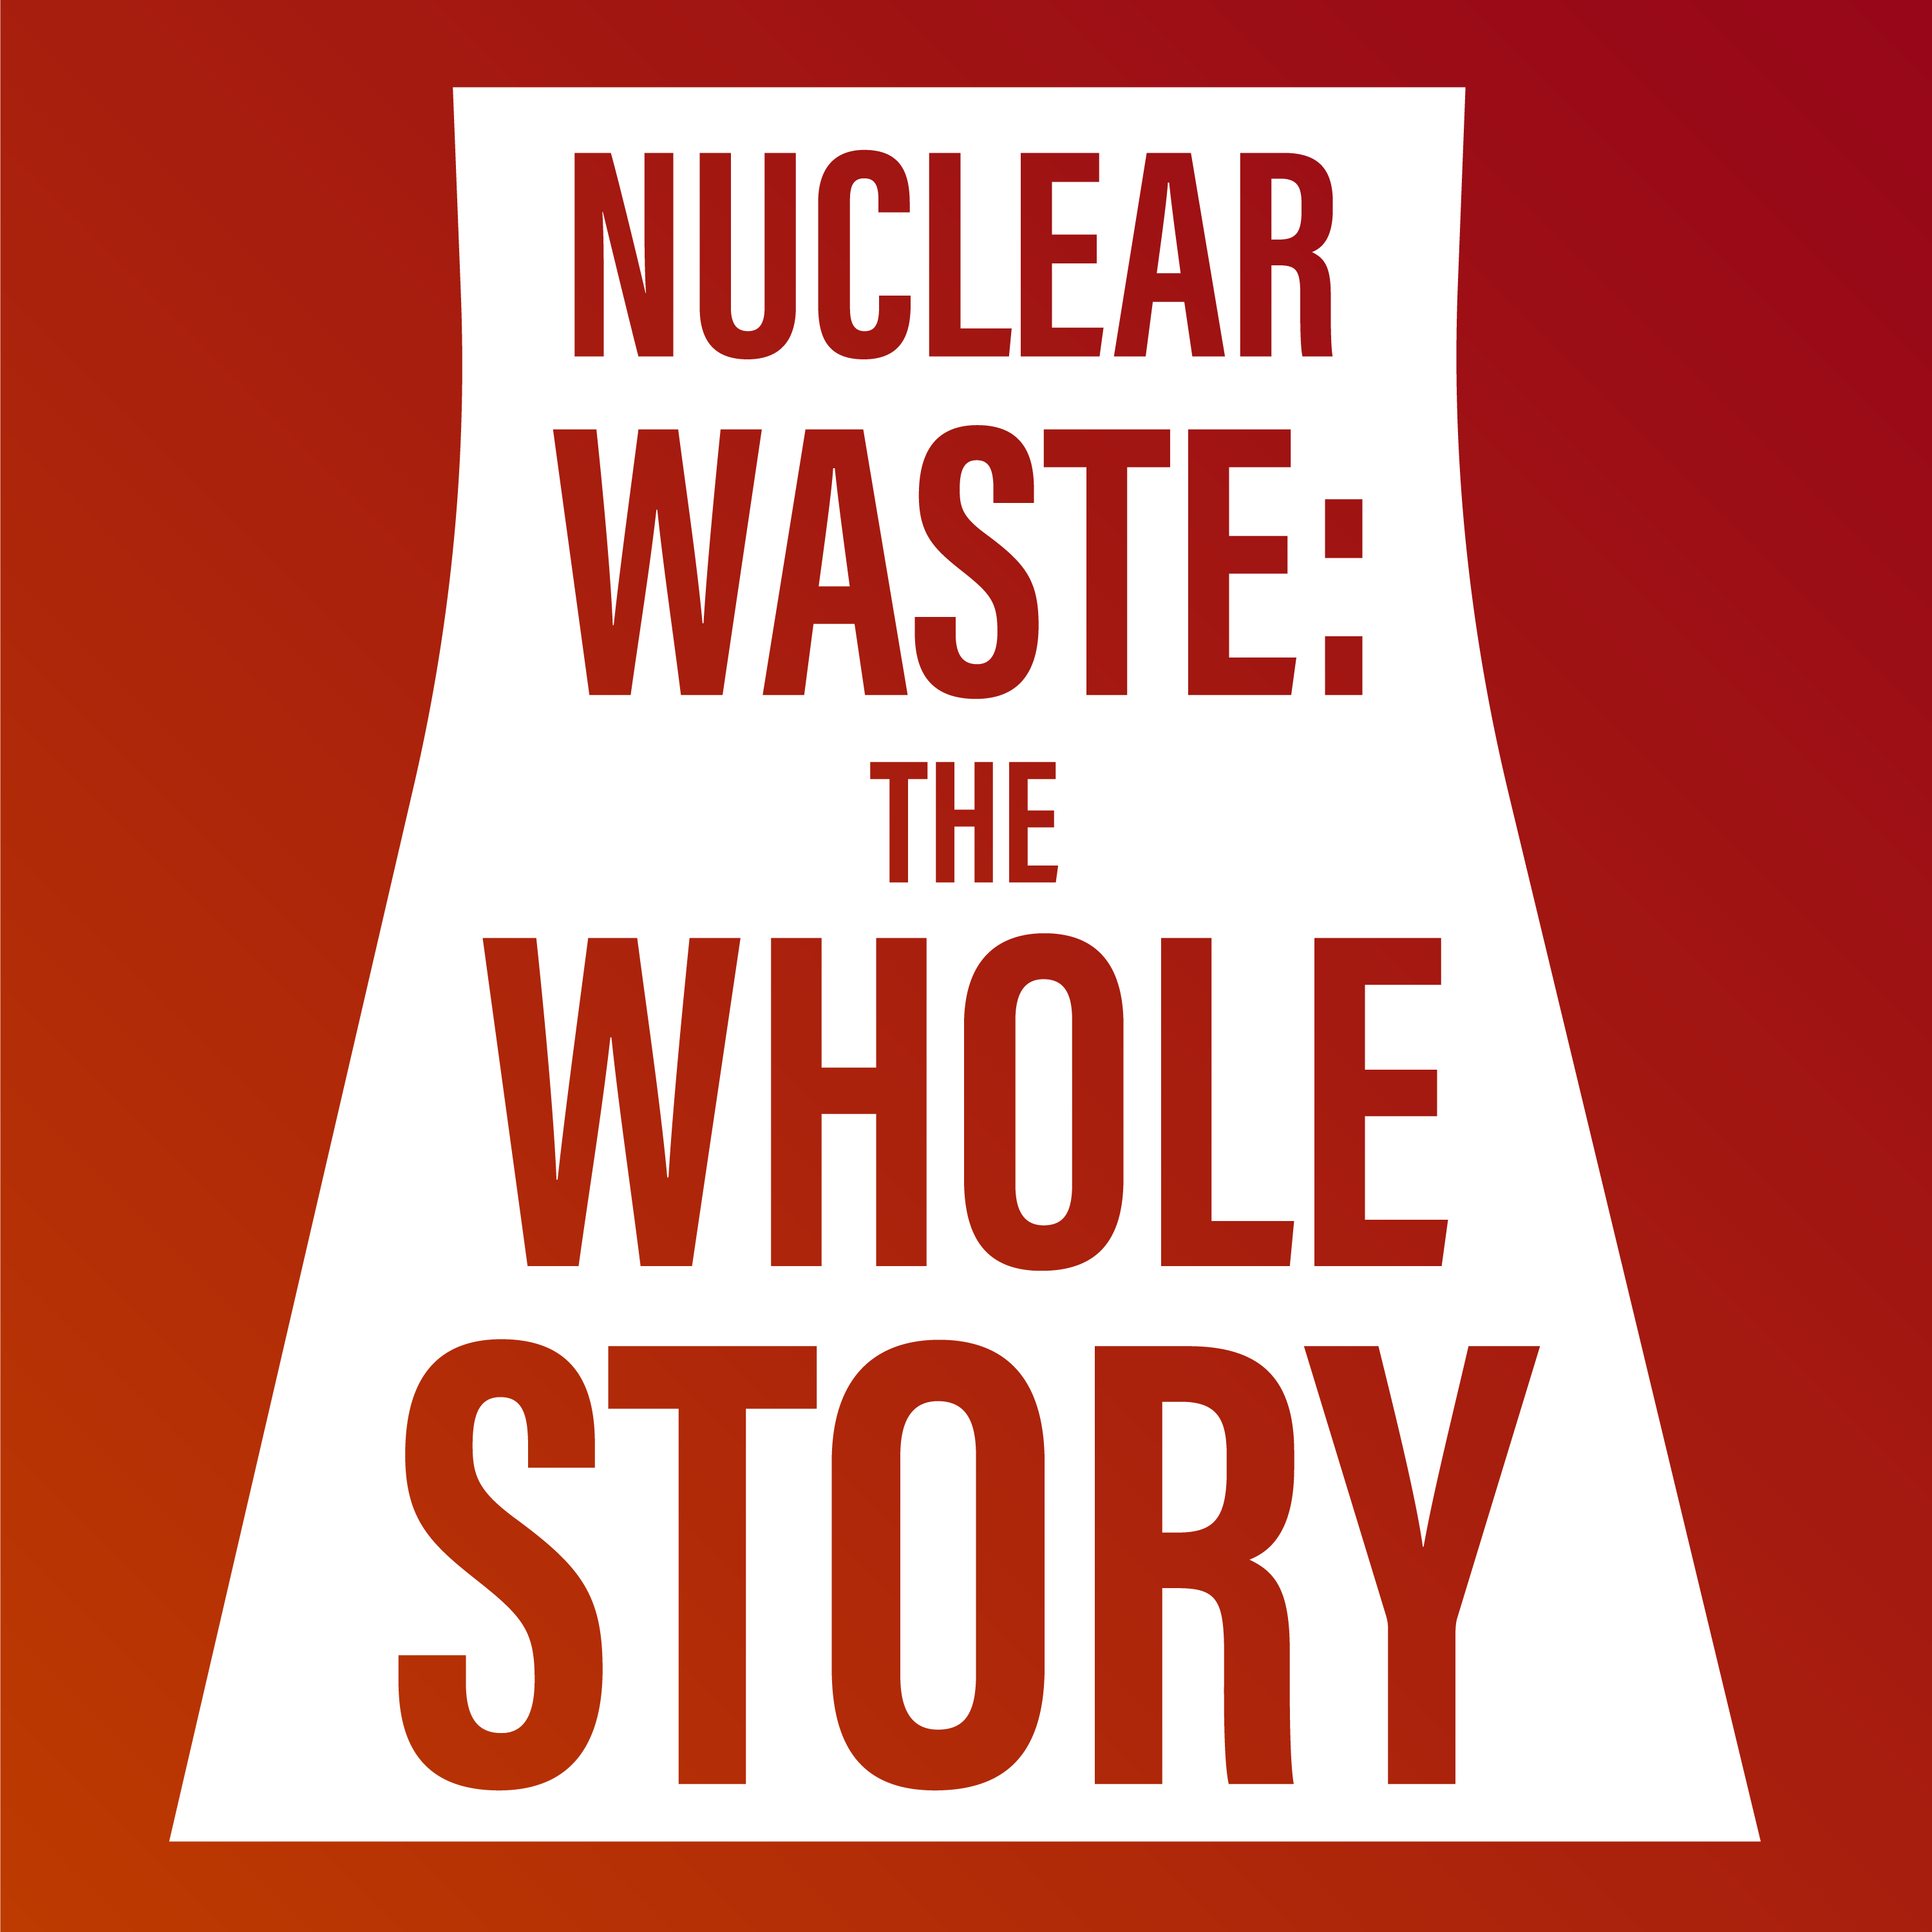 Artwork for podcast Nuclear Waste: The Whole Story